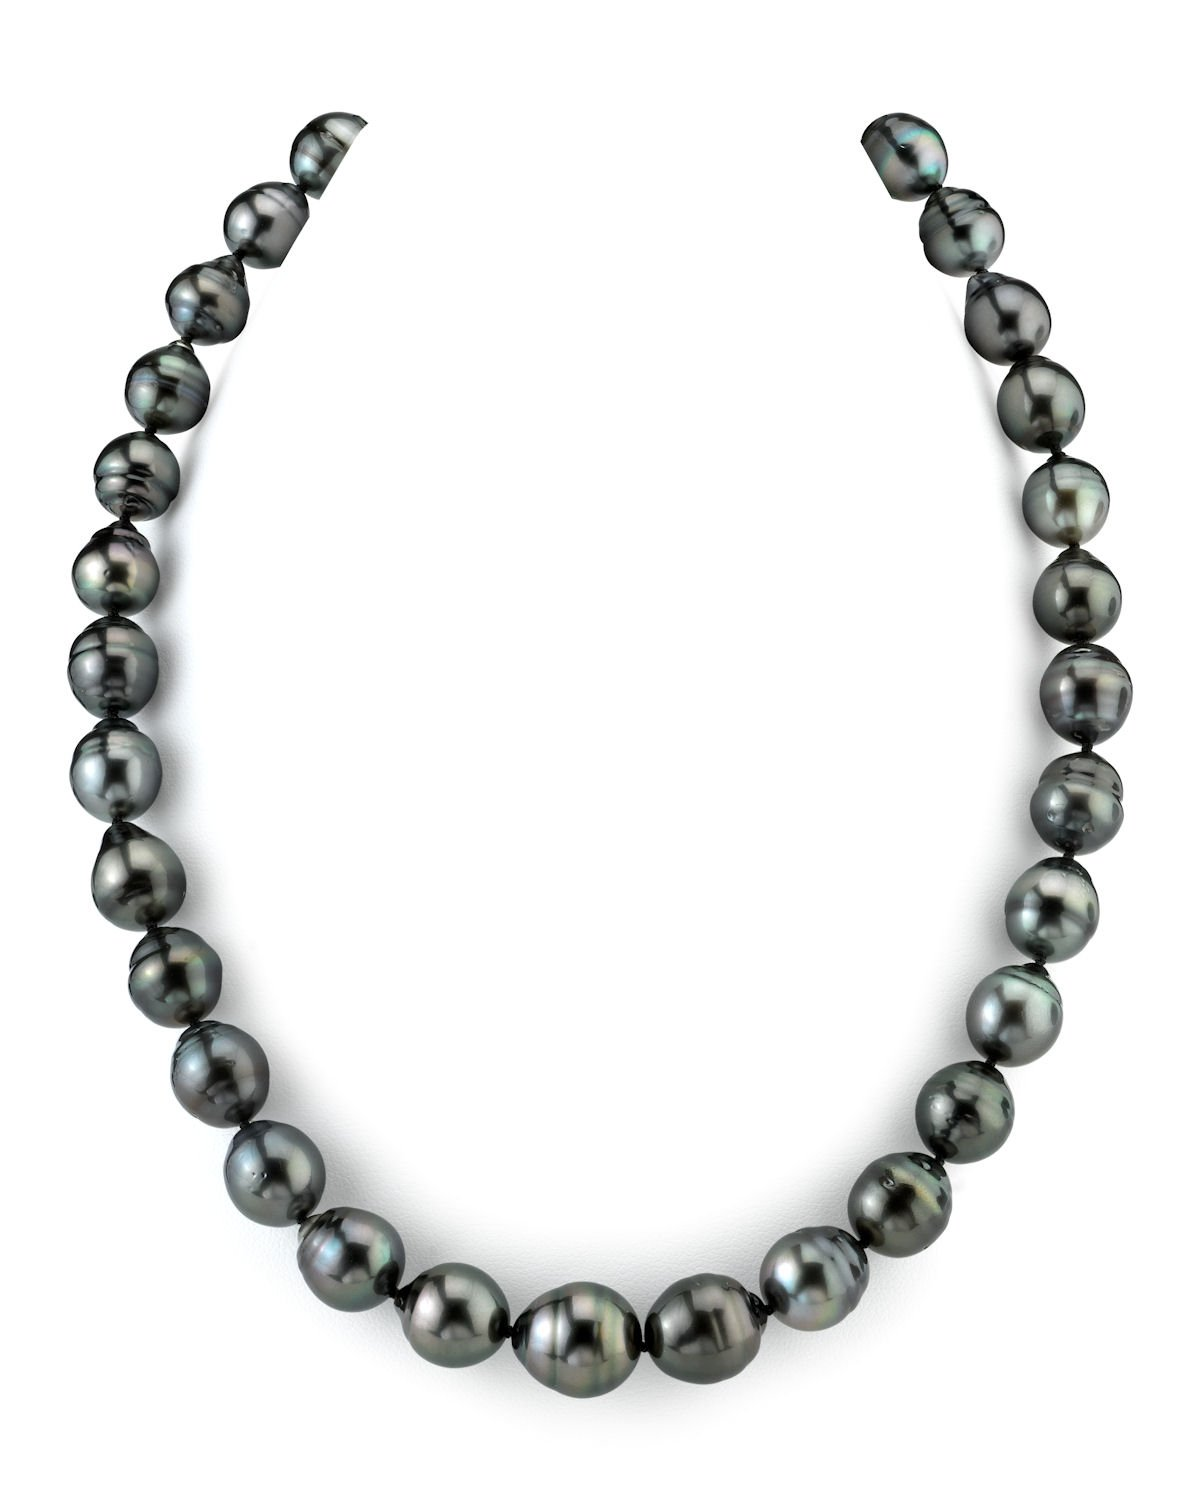 14K Gold 11-12mm Tahitian South Sea Baroque Cultured Pearl Necklace - AAA Quality, 16'' Length